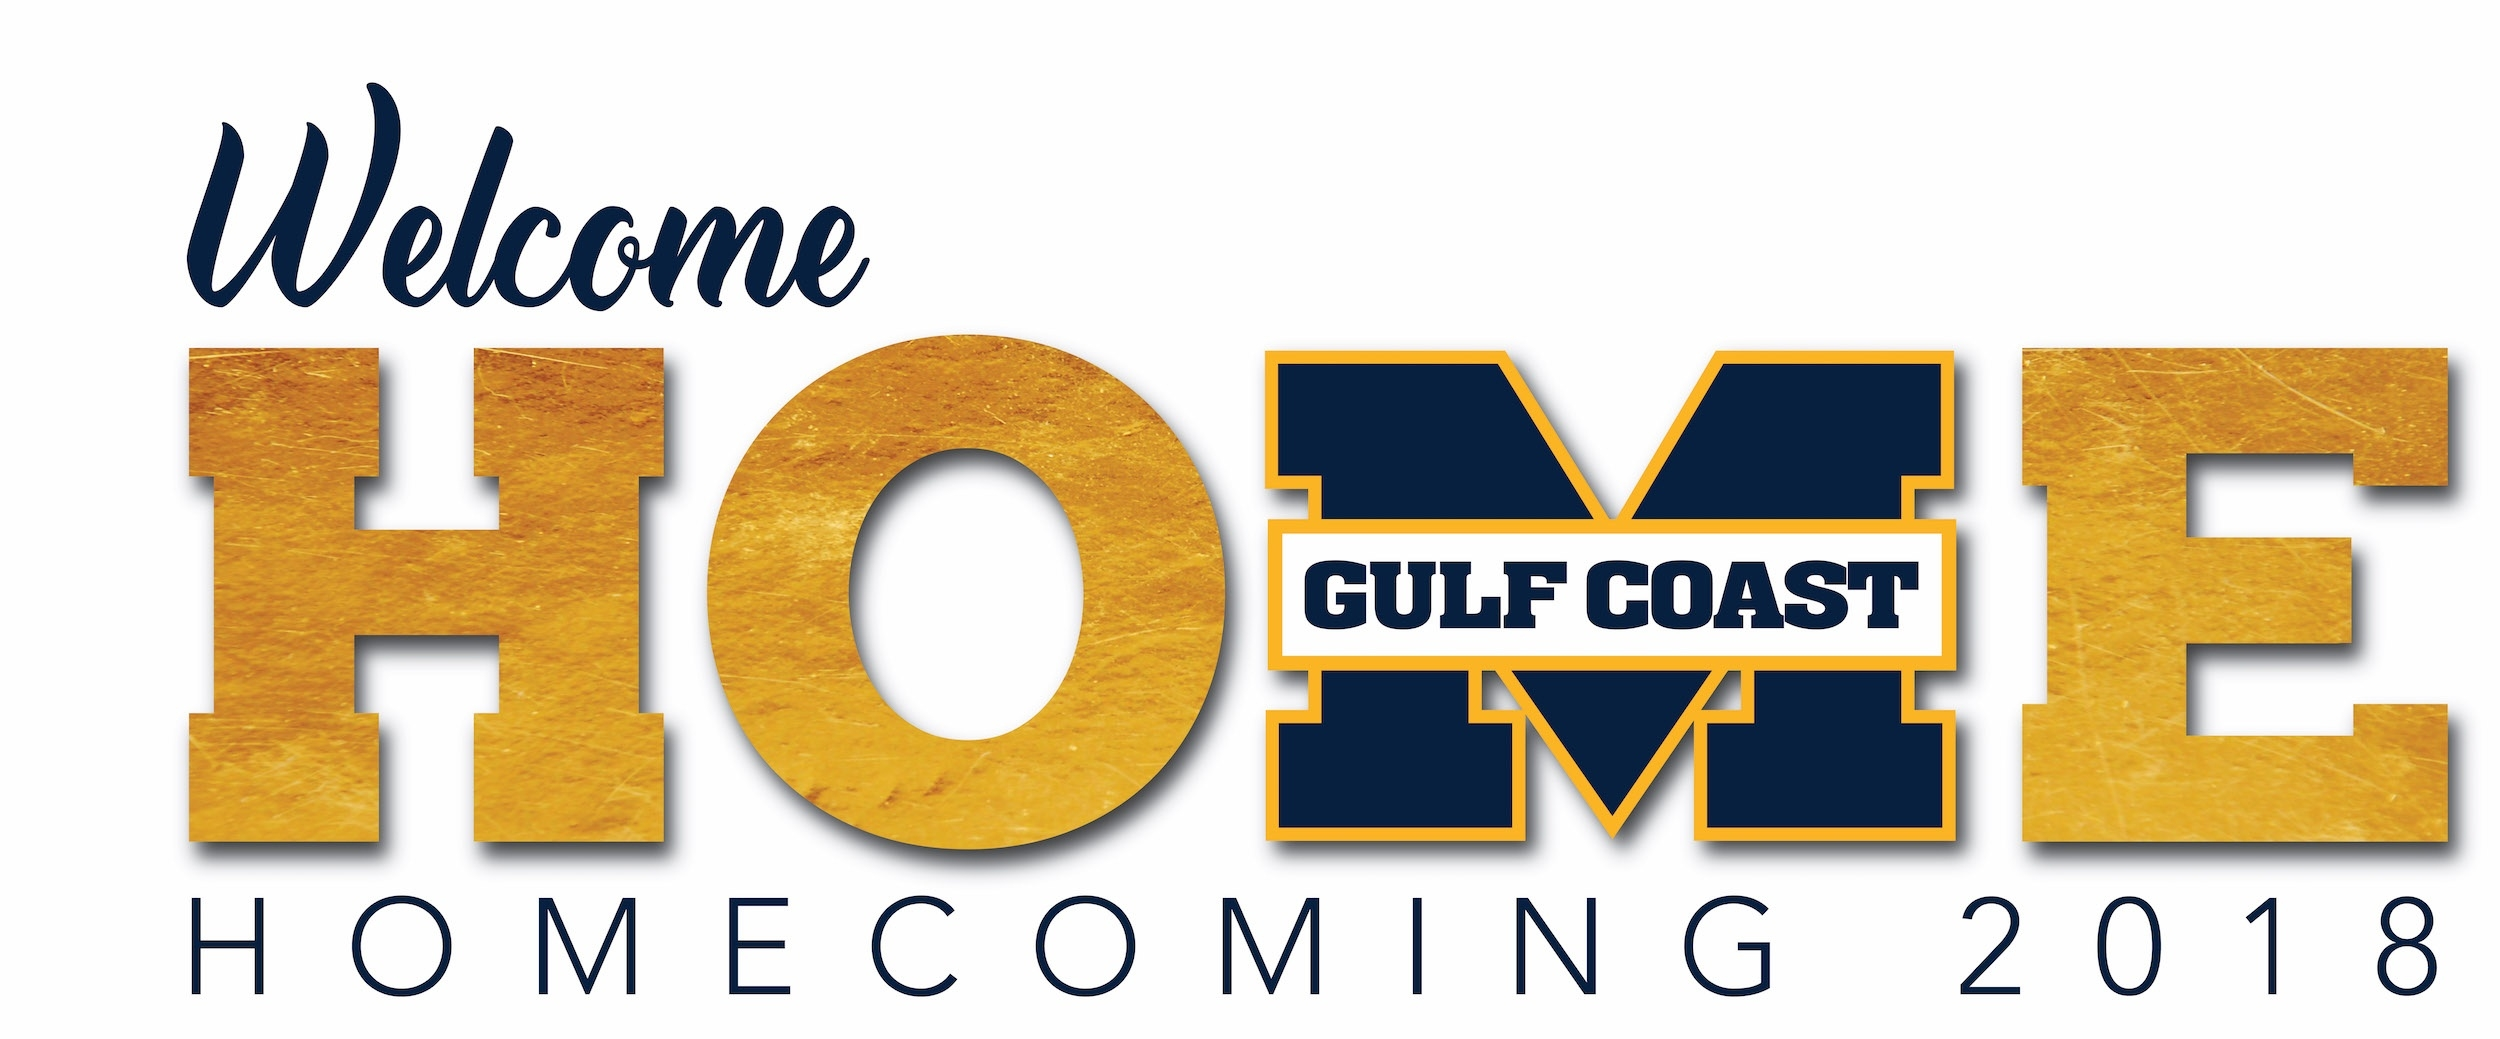 Mgccc Celebrates 2018 Homecoming With Two Days Of Activities_D'iberville High School Calendar